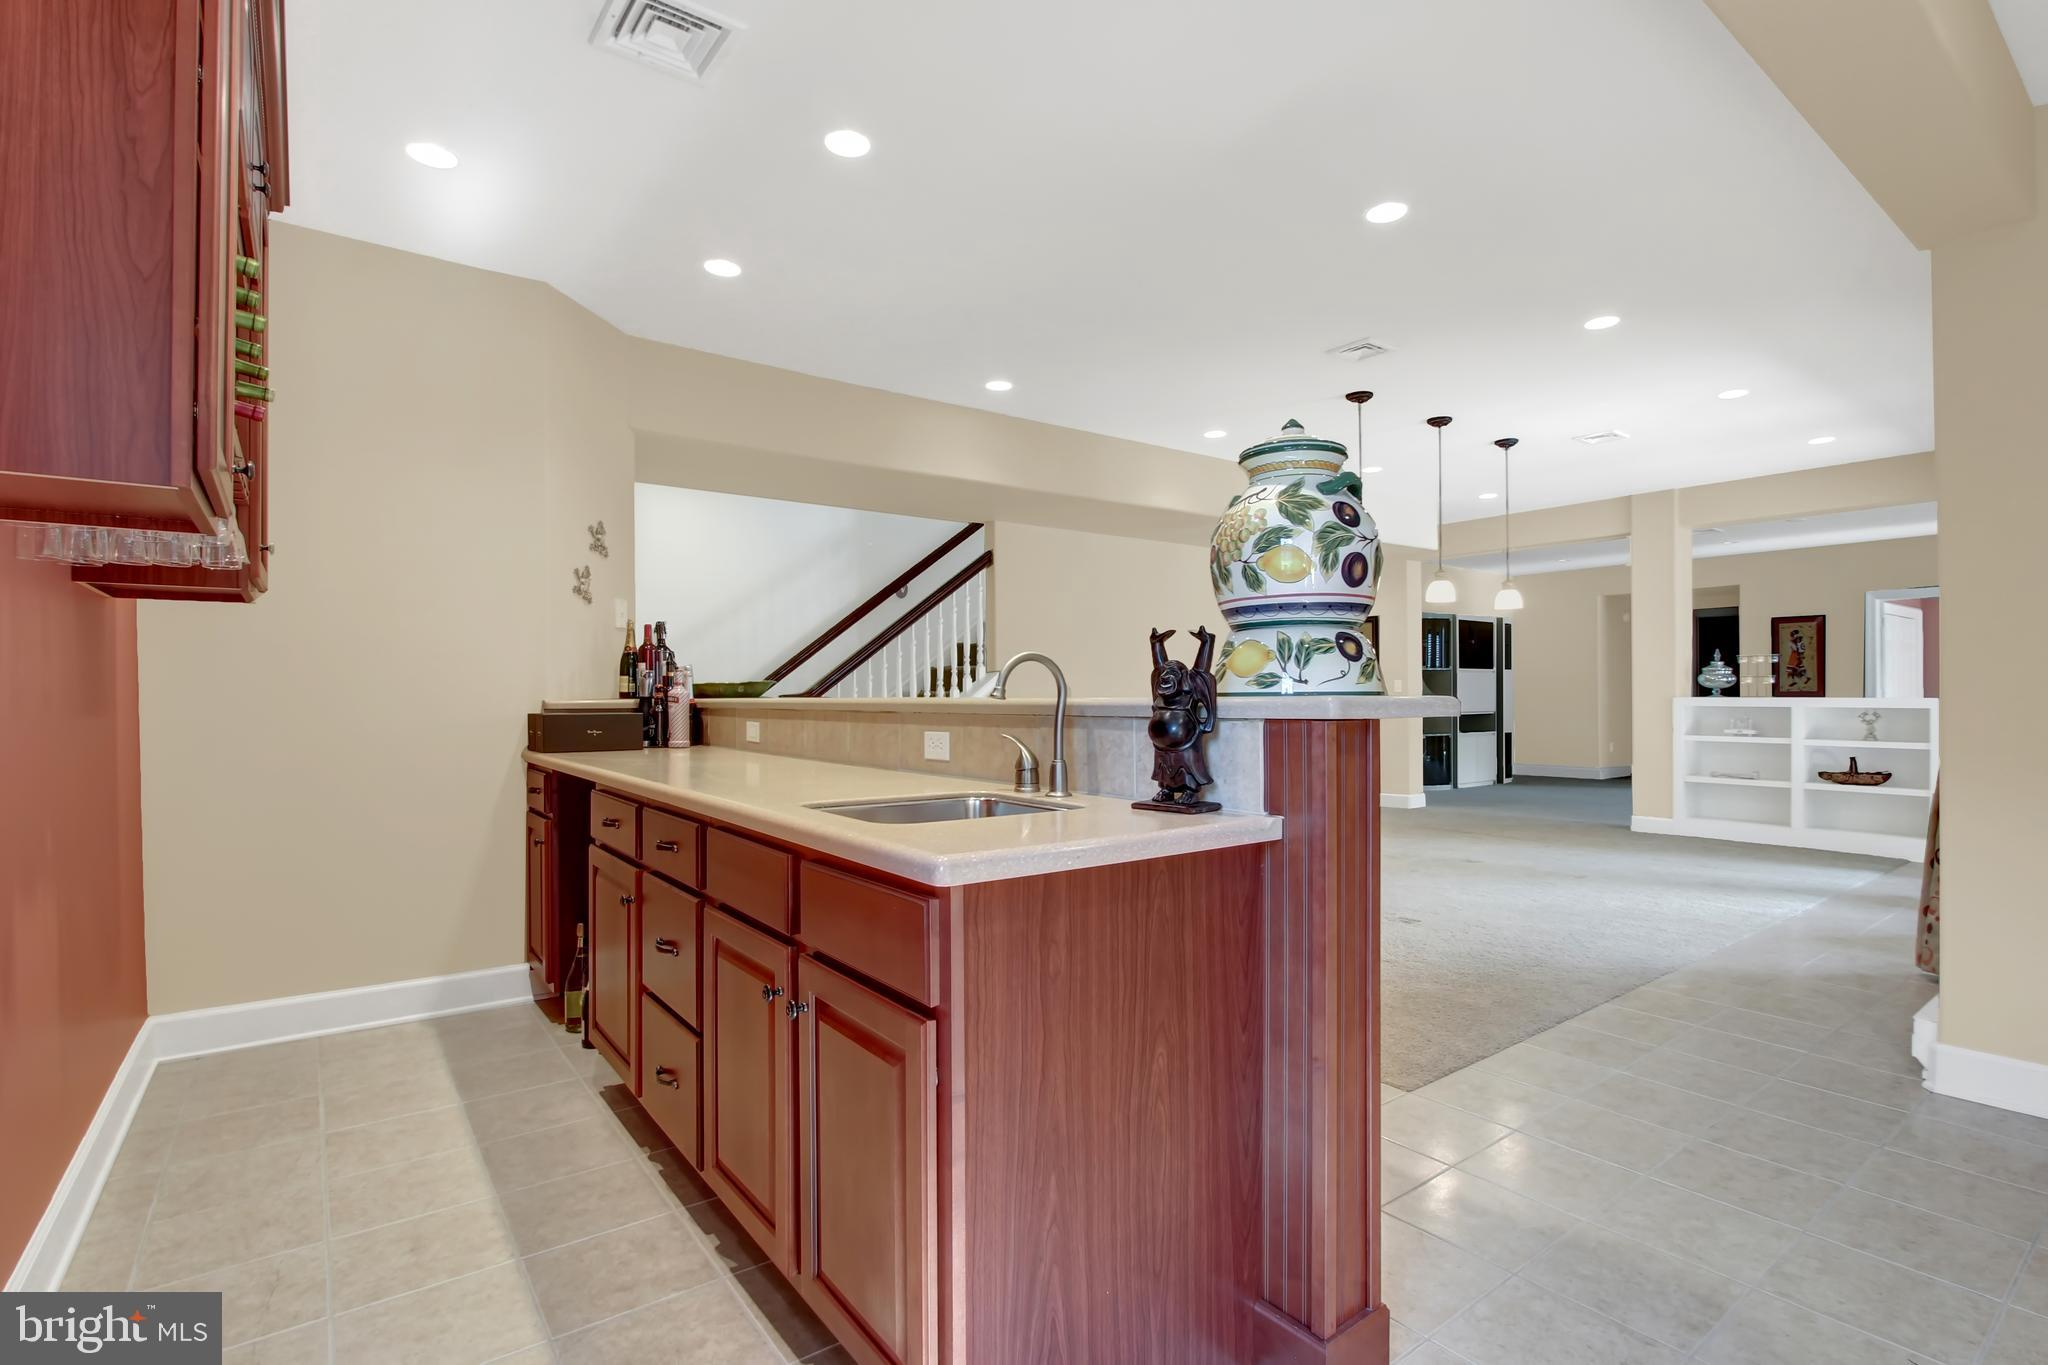 Open, finished basement with built-in wooden bar